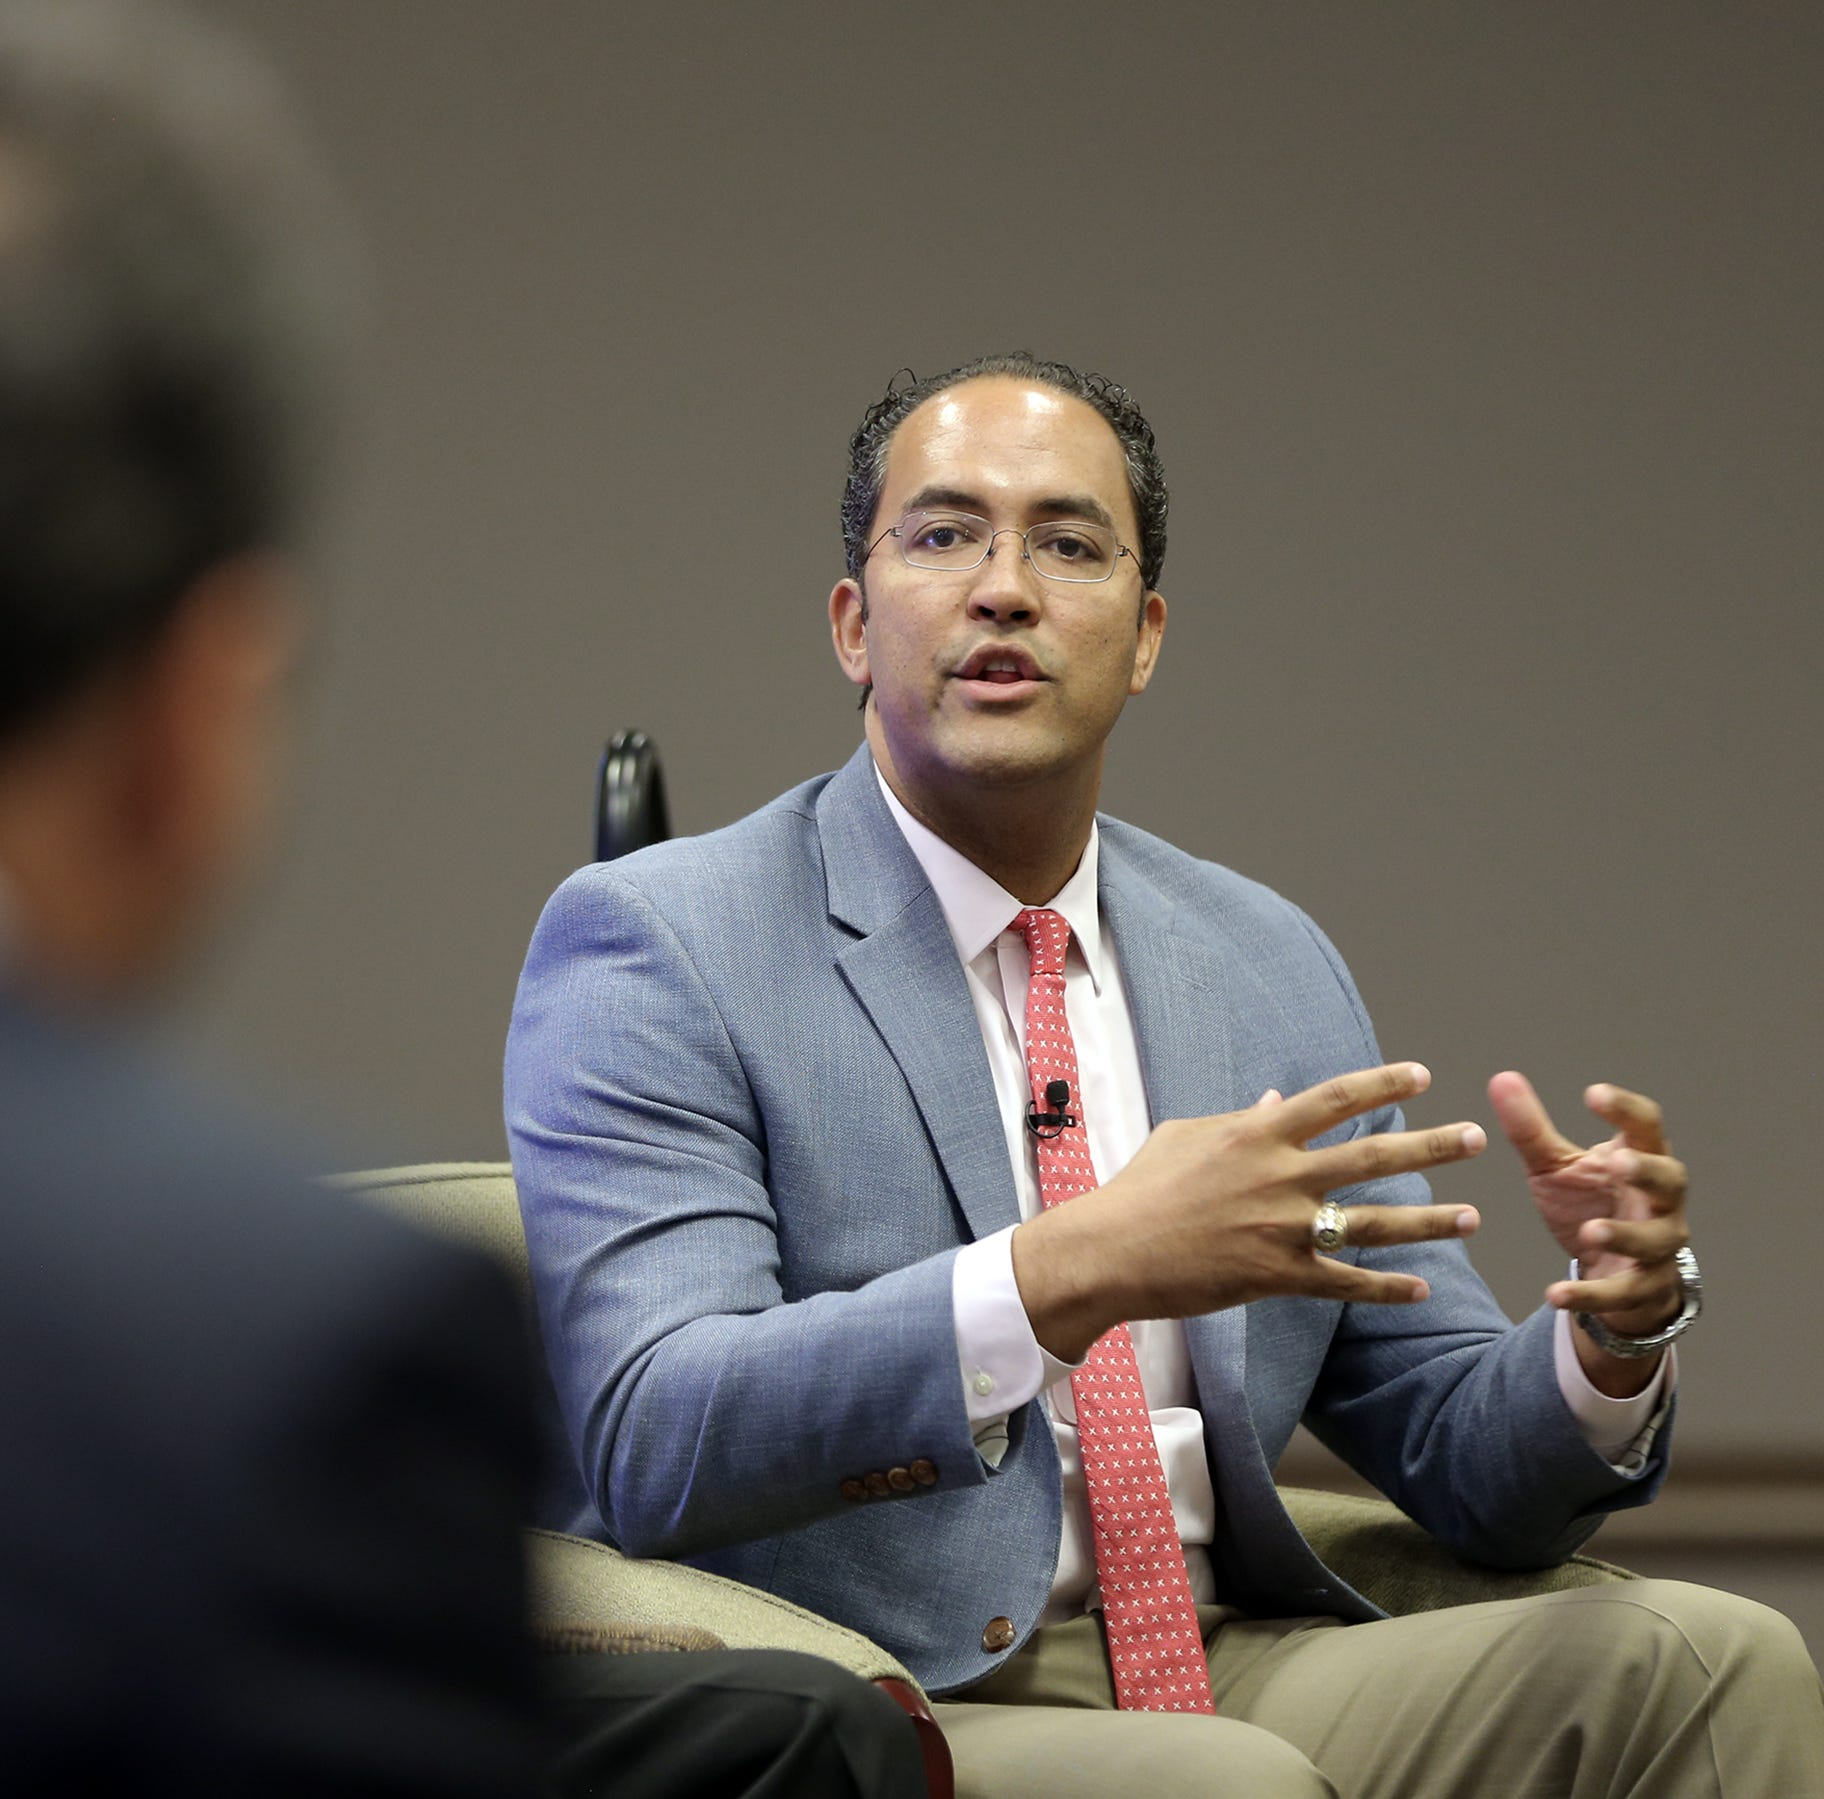 Texas 2018 midterm elections: We endorse Will Hurd and Veronica Escobar for Congress